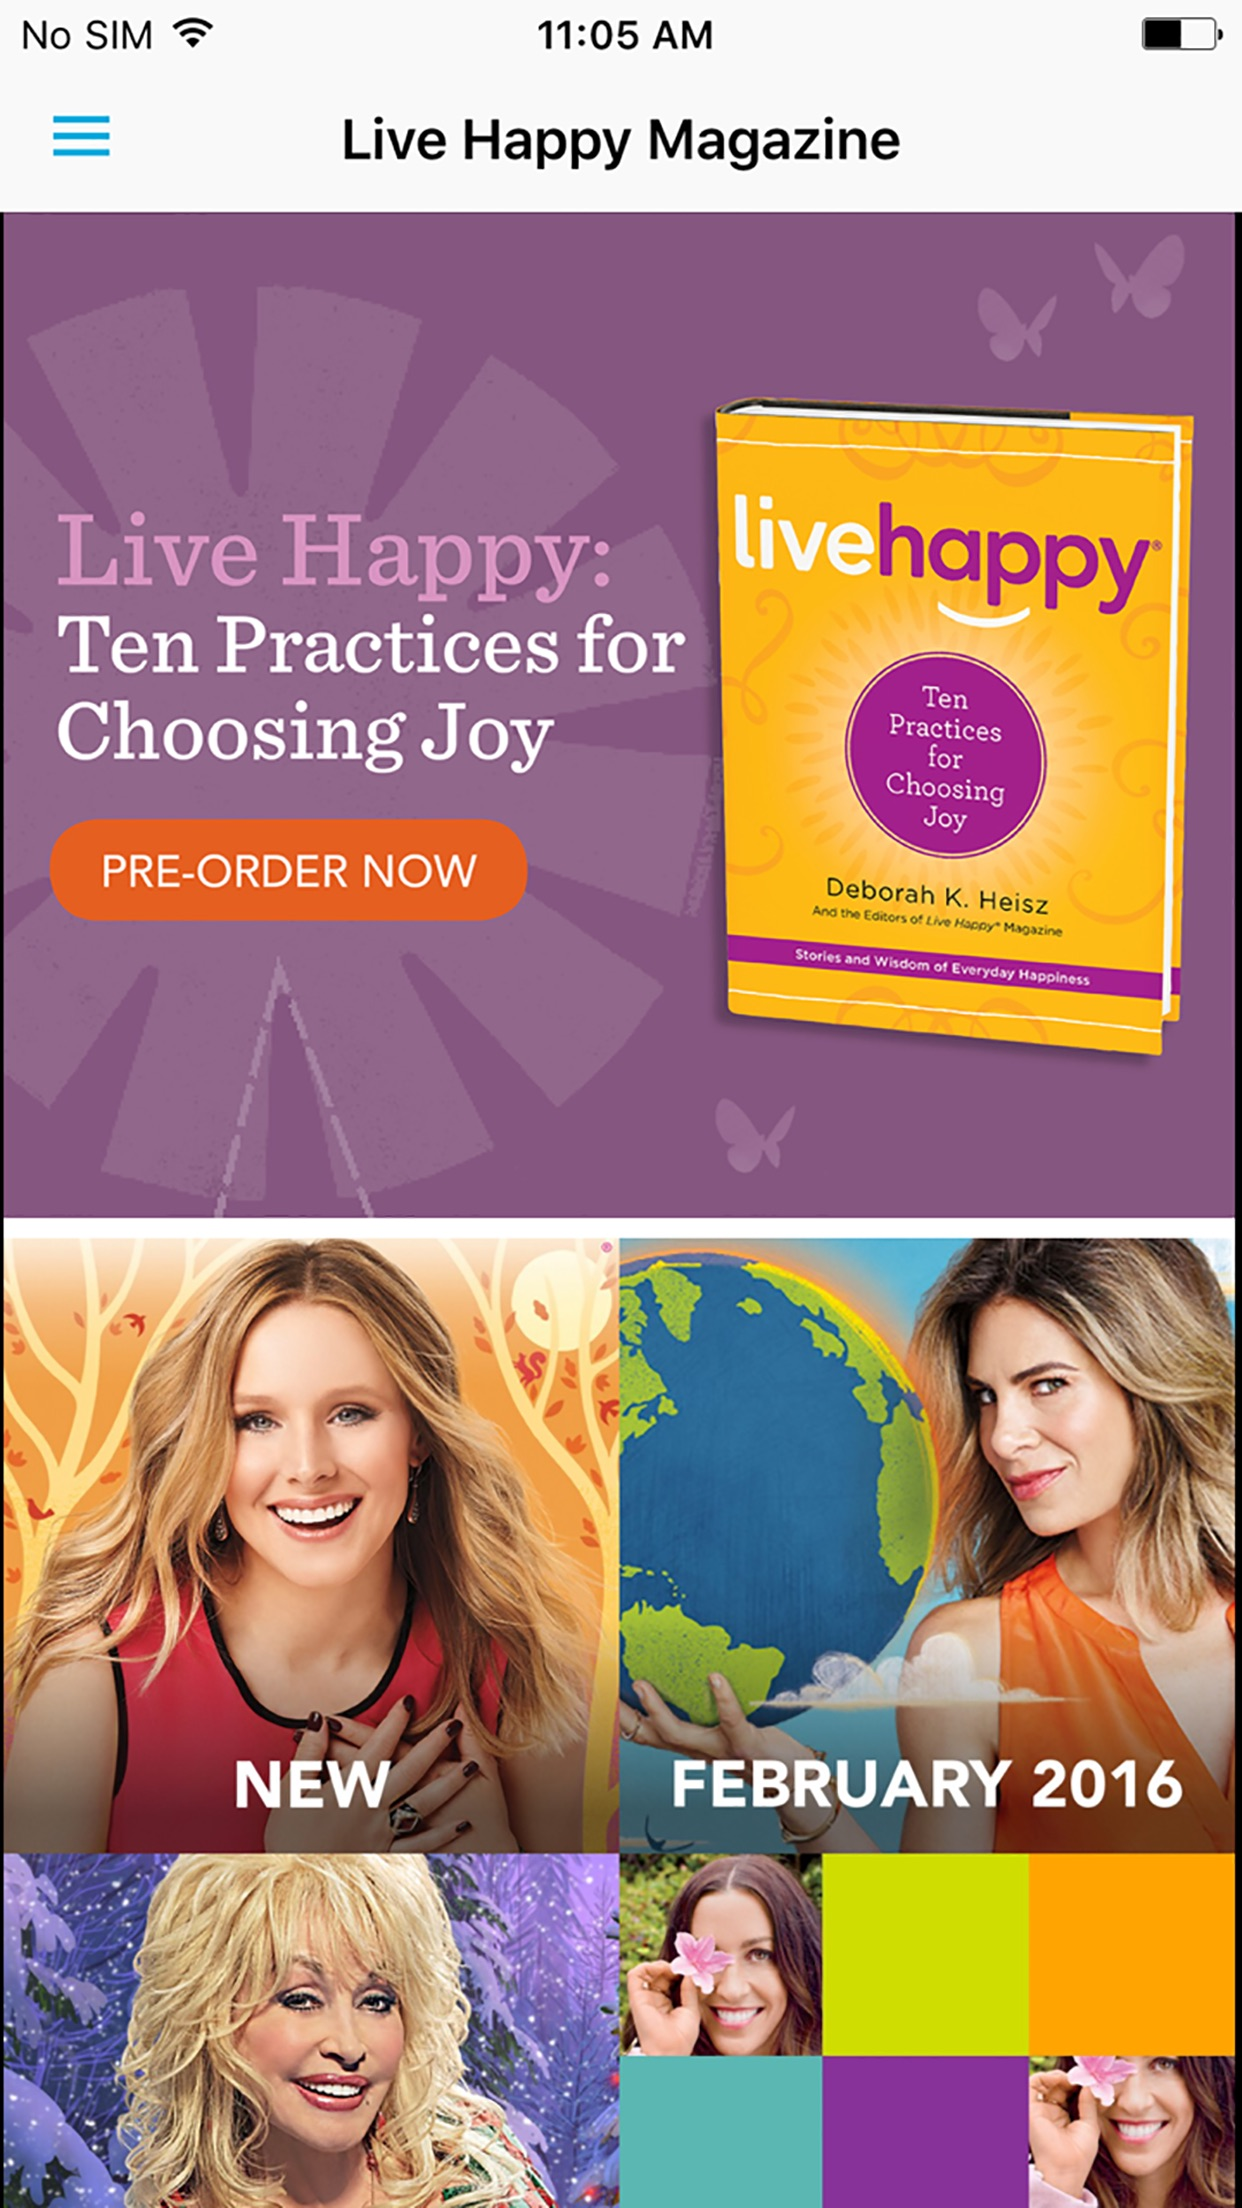 Live Happy Magazine Screenshot